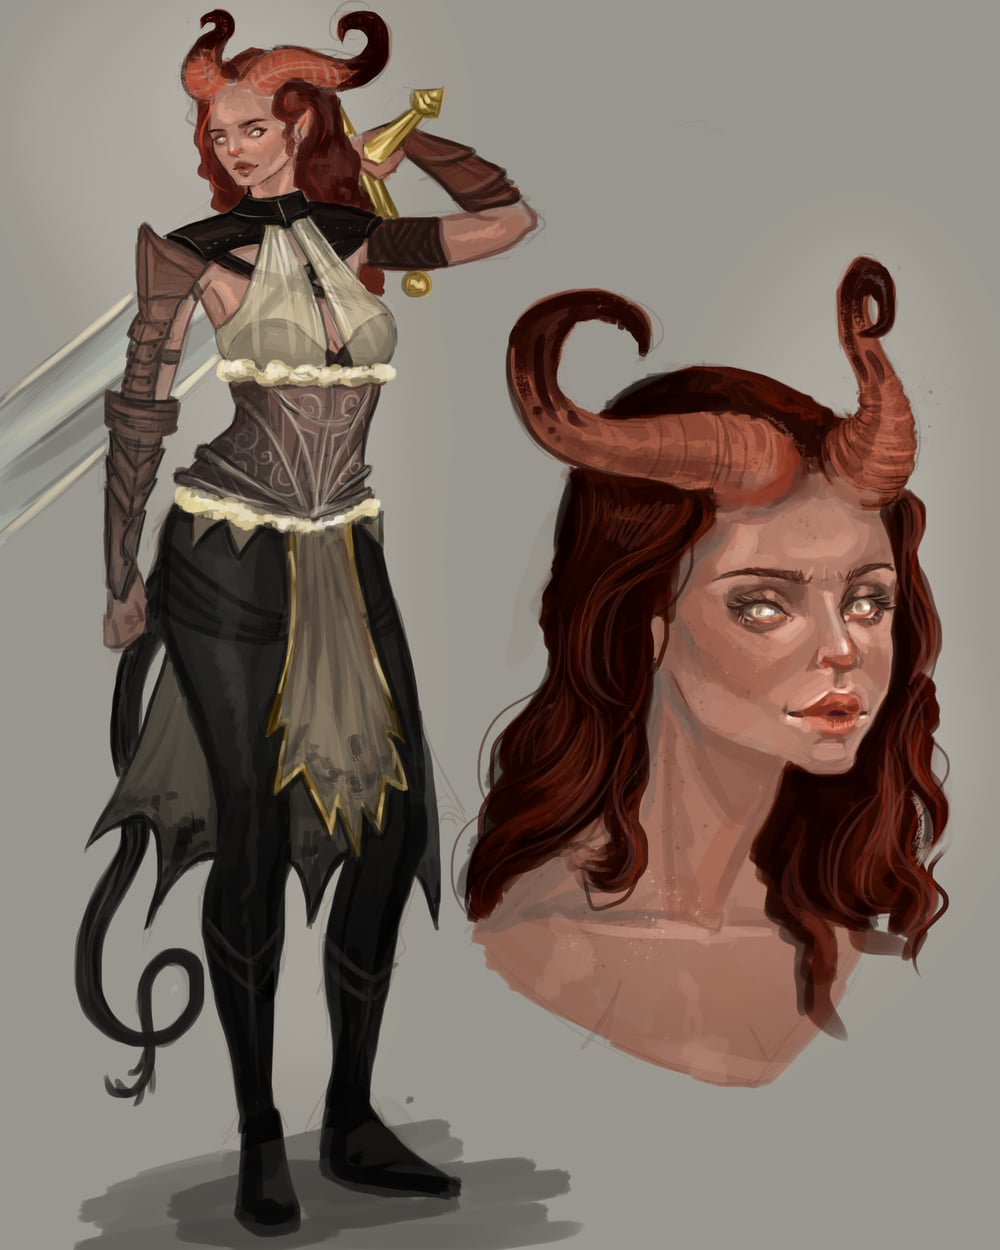 Trick the Tiefling